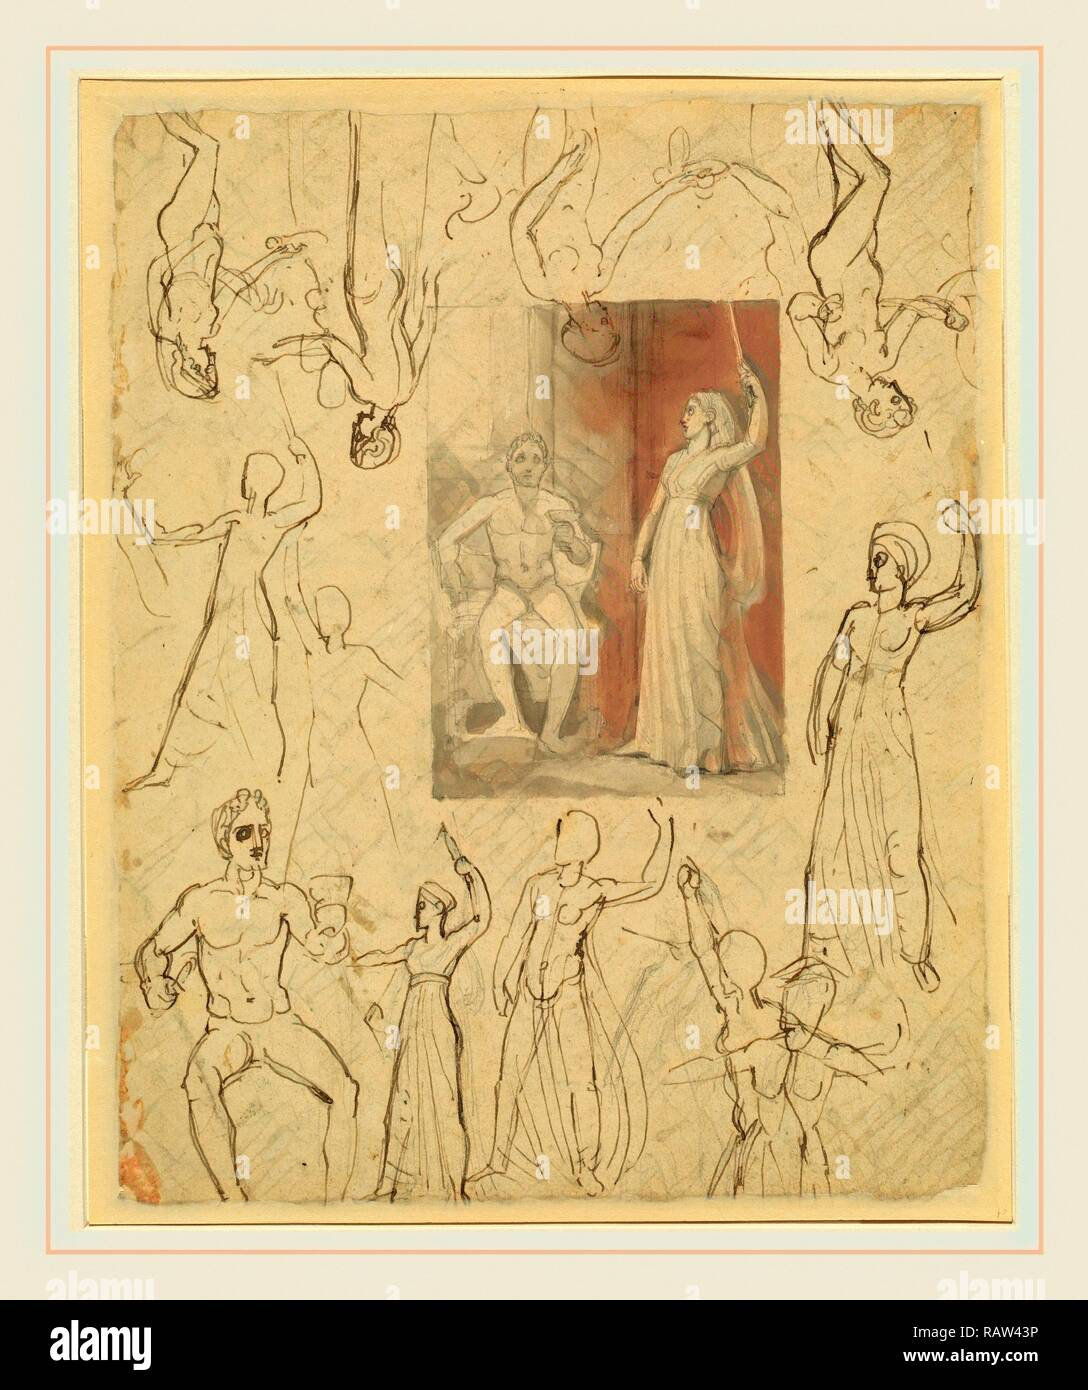 Thomas Stothard, Design for a Book Illustration and Related Studies [recto], British, 1755-1834, pen and gray and reimagined - Stock Image